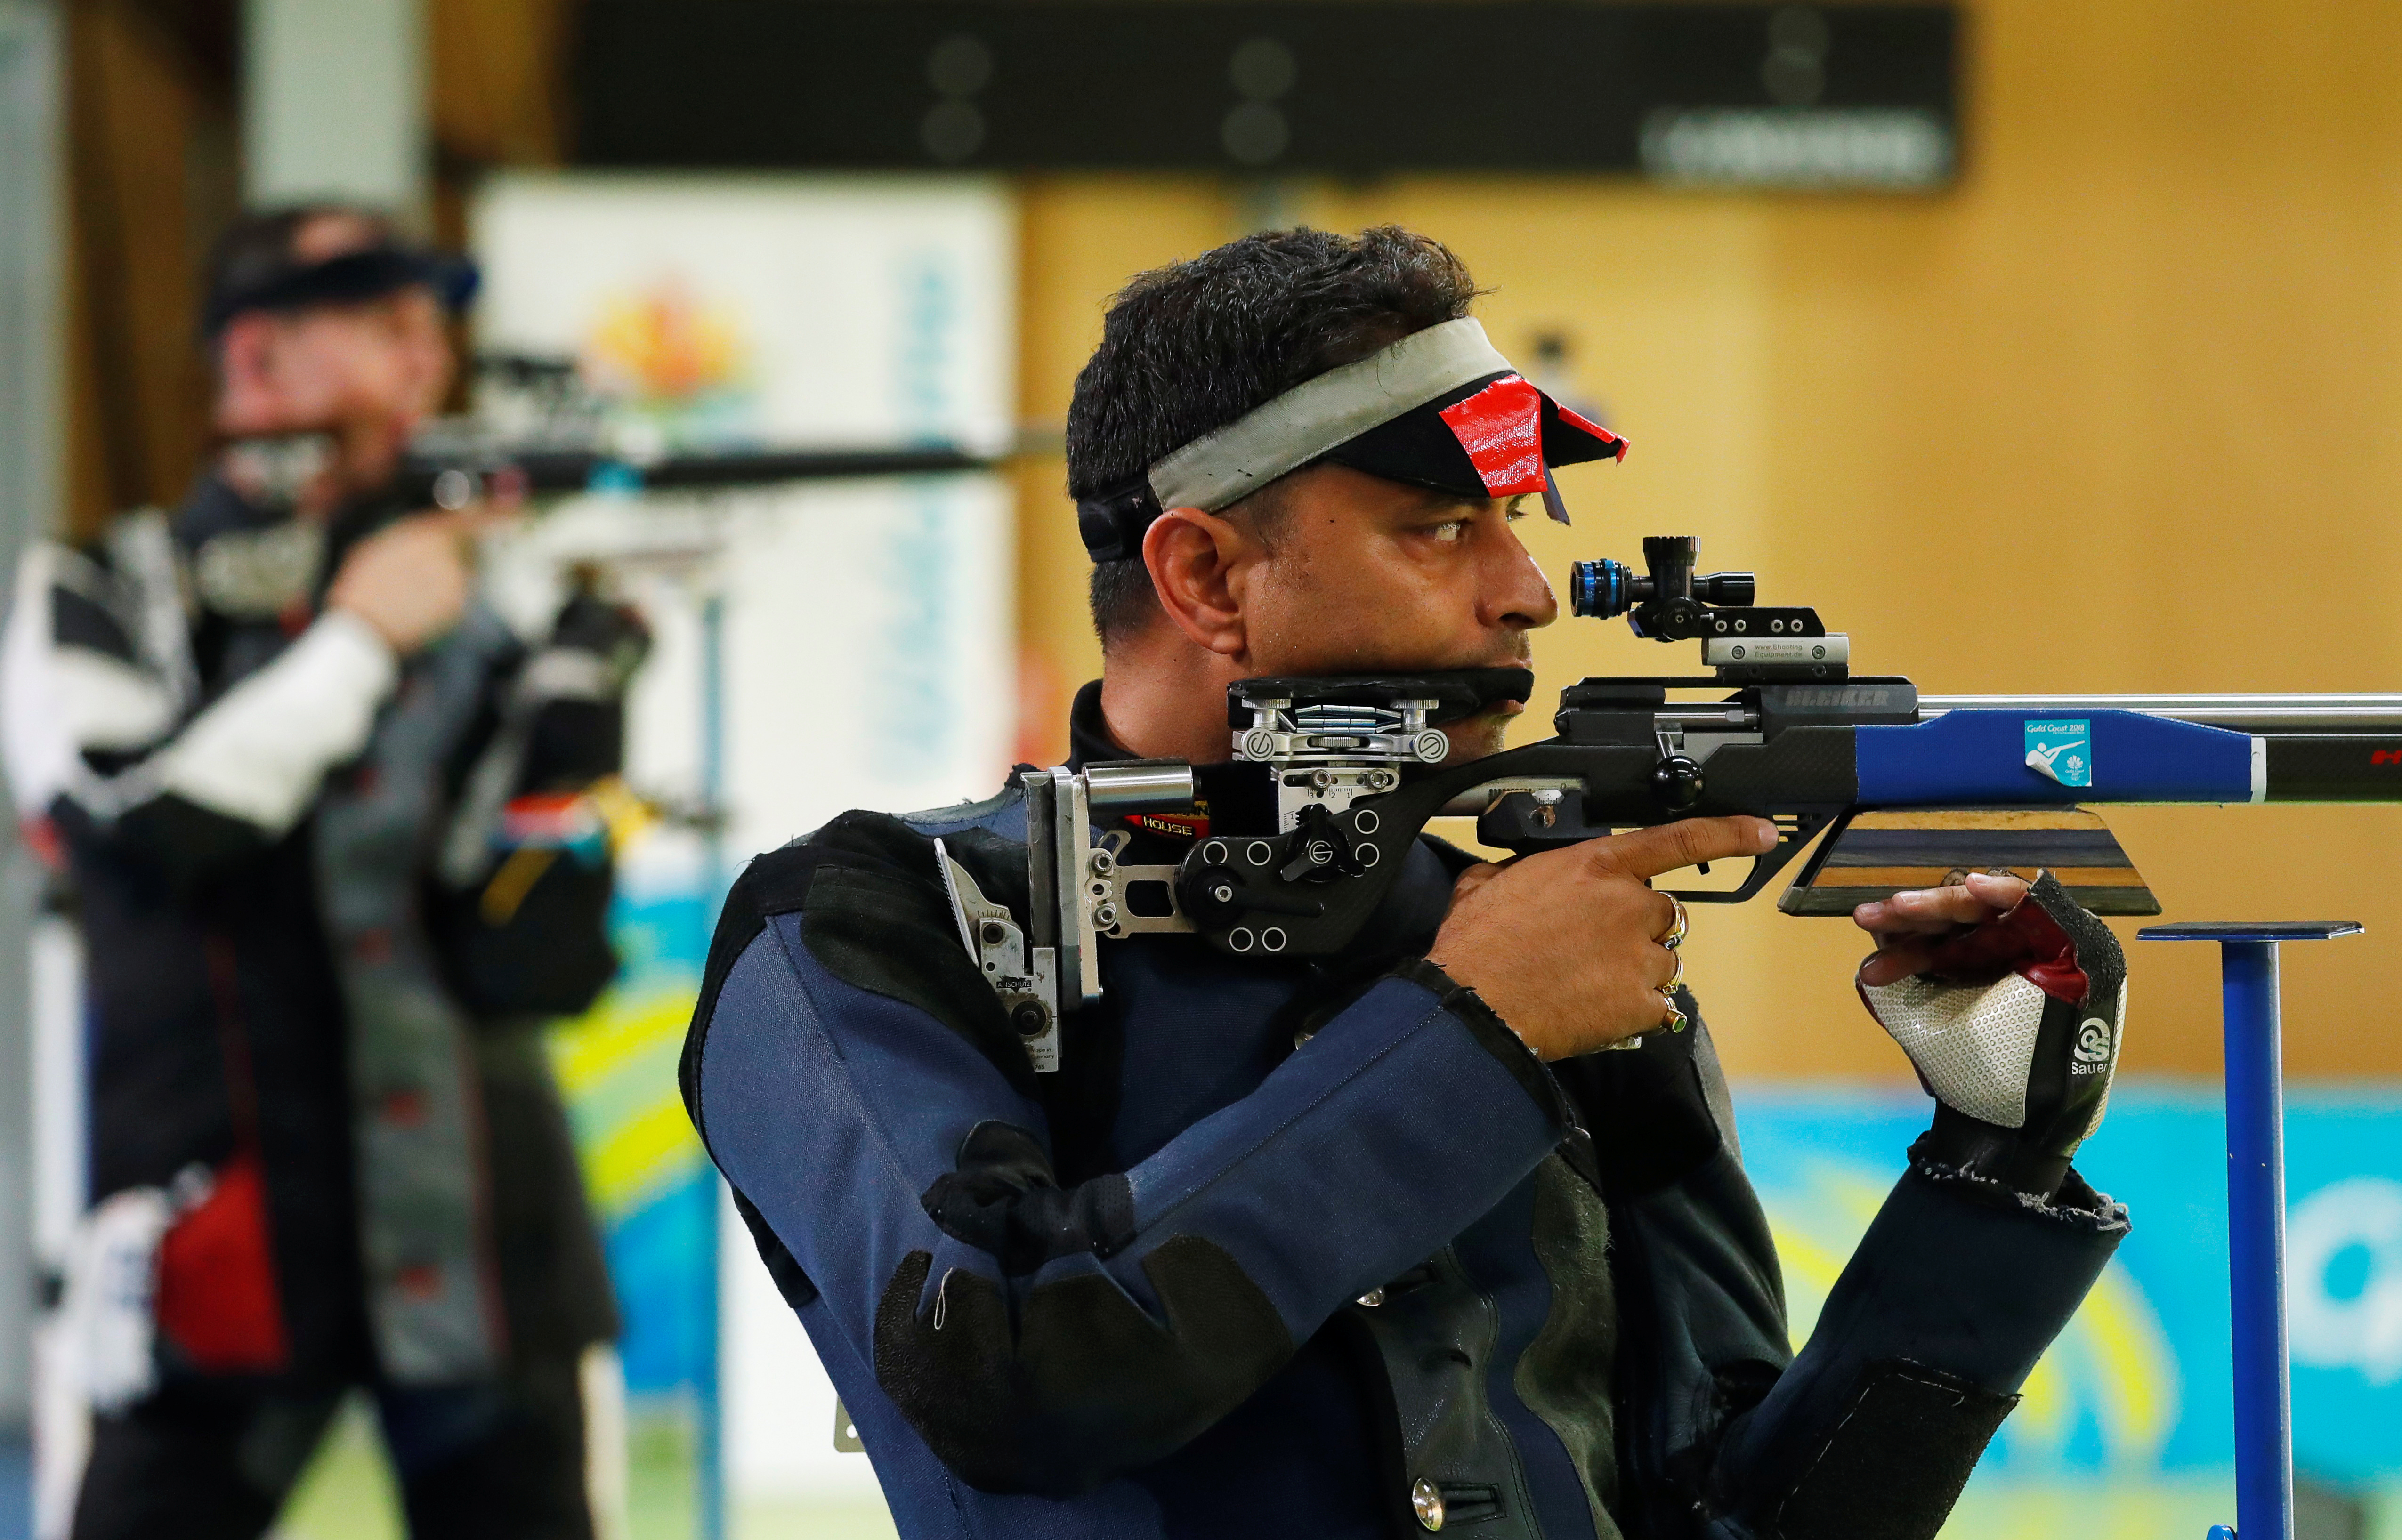 The Indian Olympic Association (IOA) has offered to host, at New Delhi or Chandigarh, separate Commonwealth championships for these two disciplines months before the actual Games begins in Birmingham (REUTERS/Eddie Safarik/File Photo).